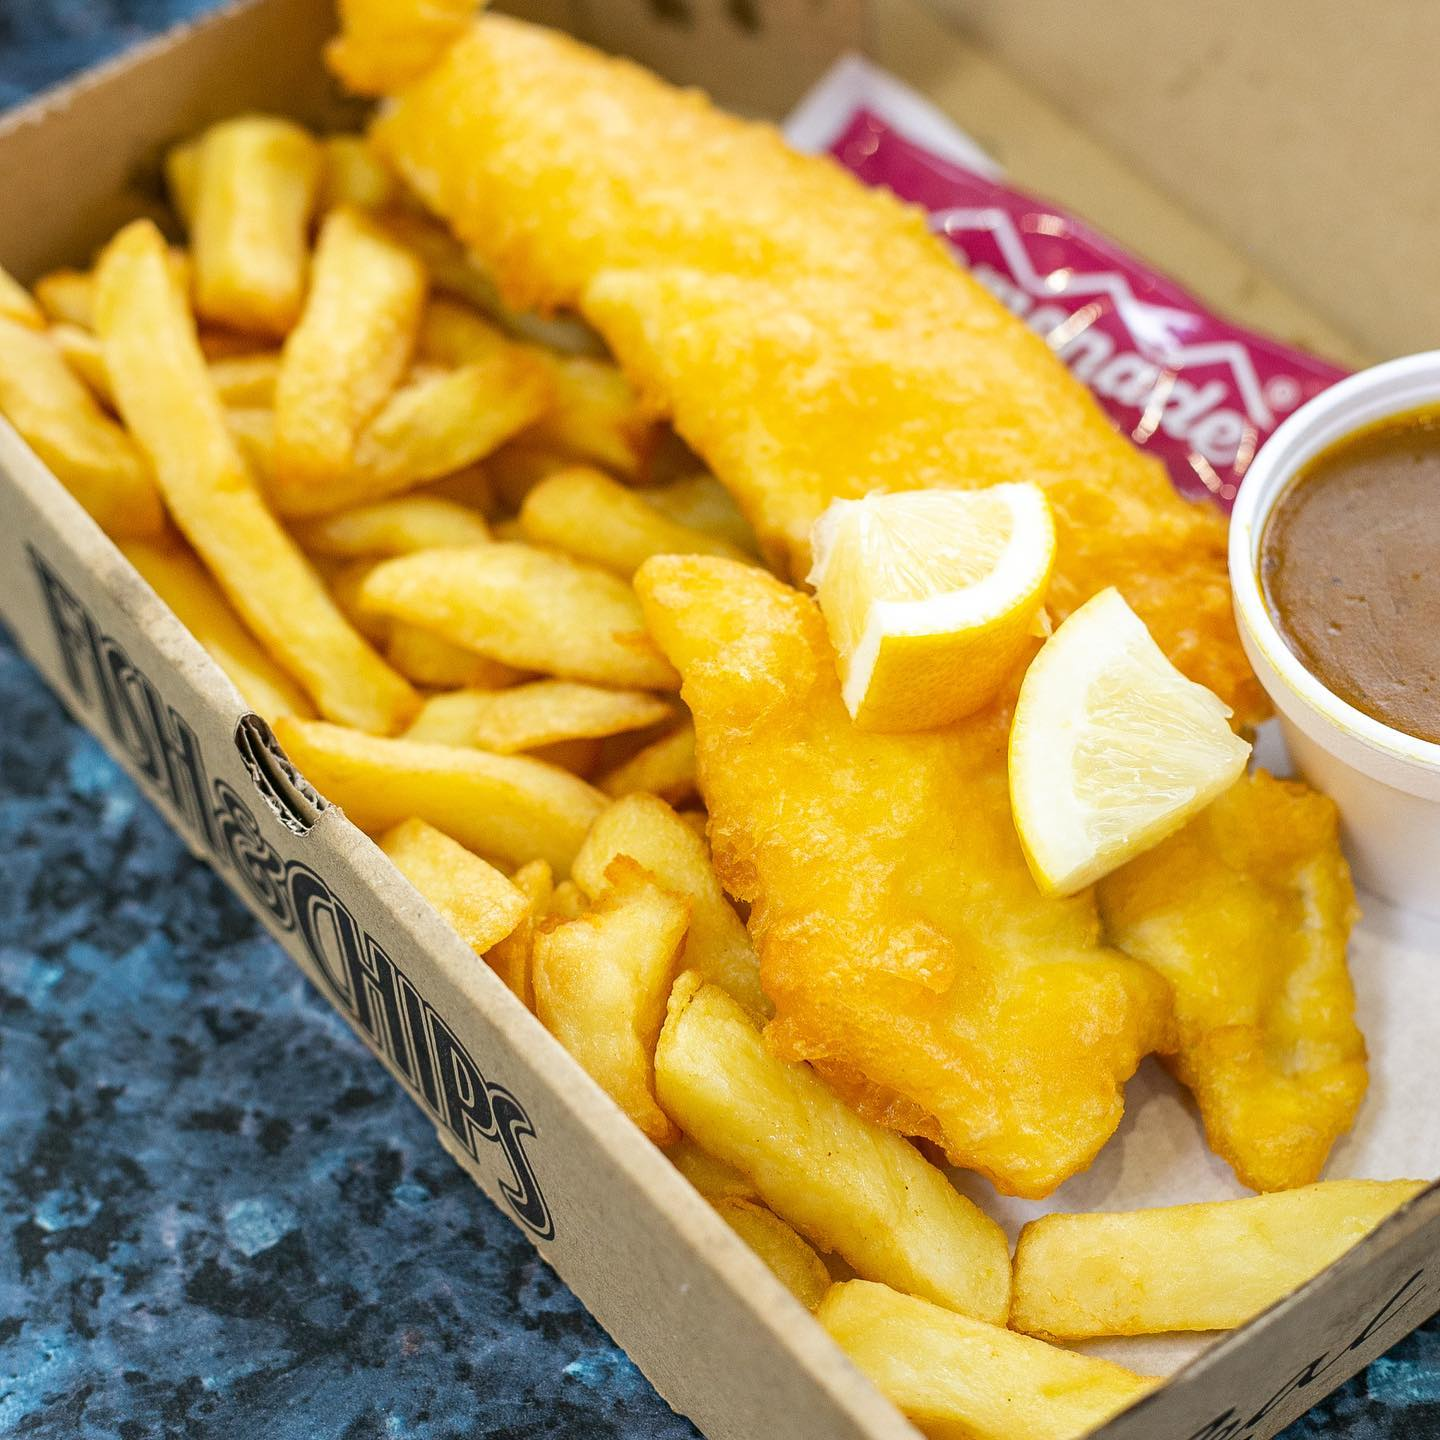 The Corner Plaice Traditional Fish & Chips